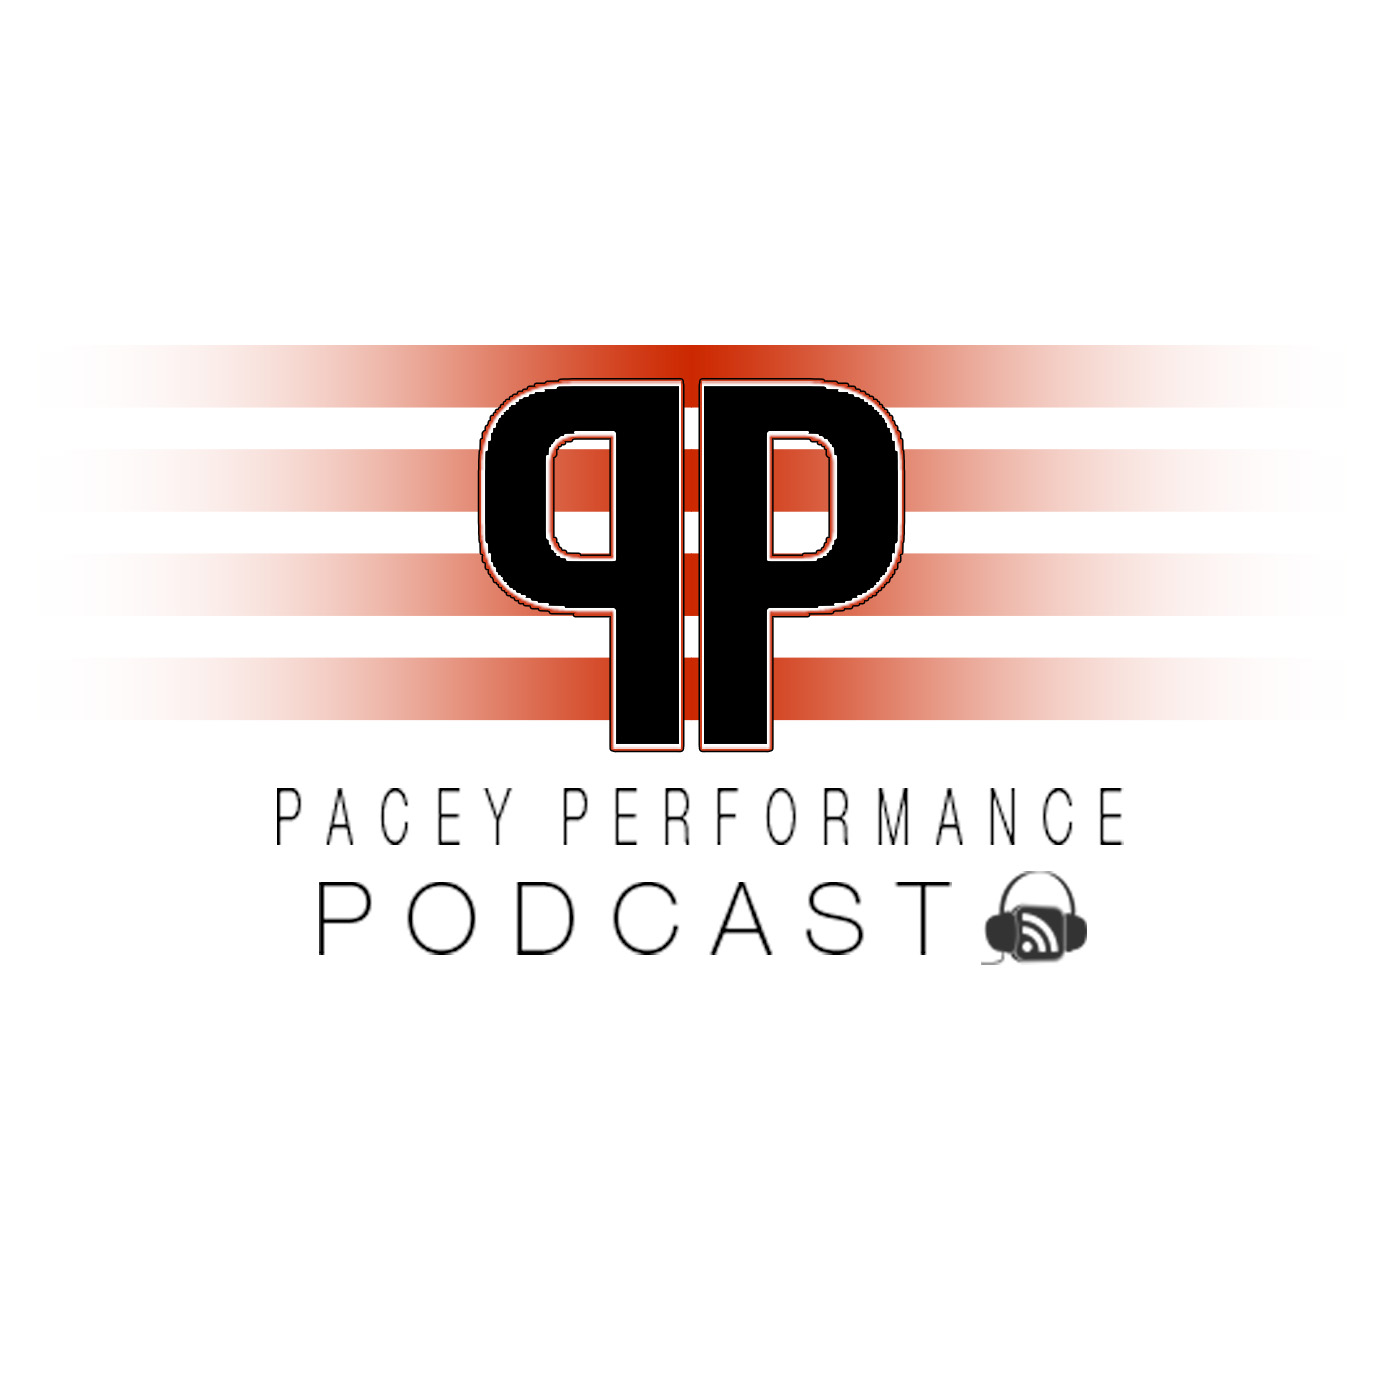 Pacey Performance Podcast #87 - Dan Pfaff (Head Coach at ALTIS)